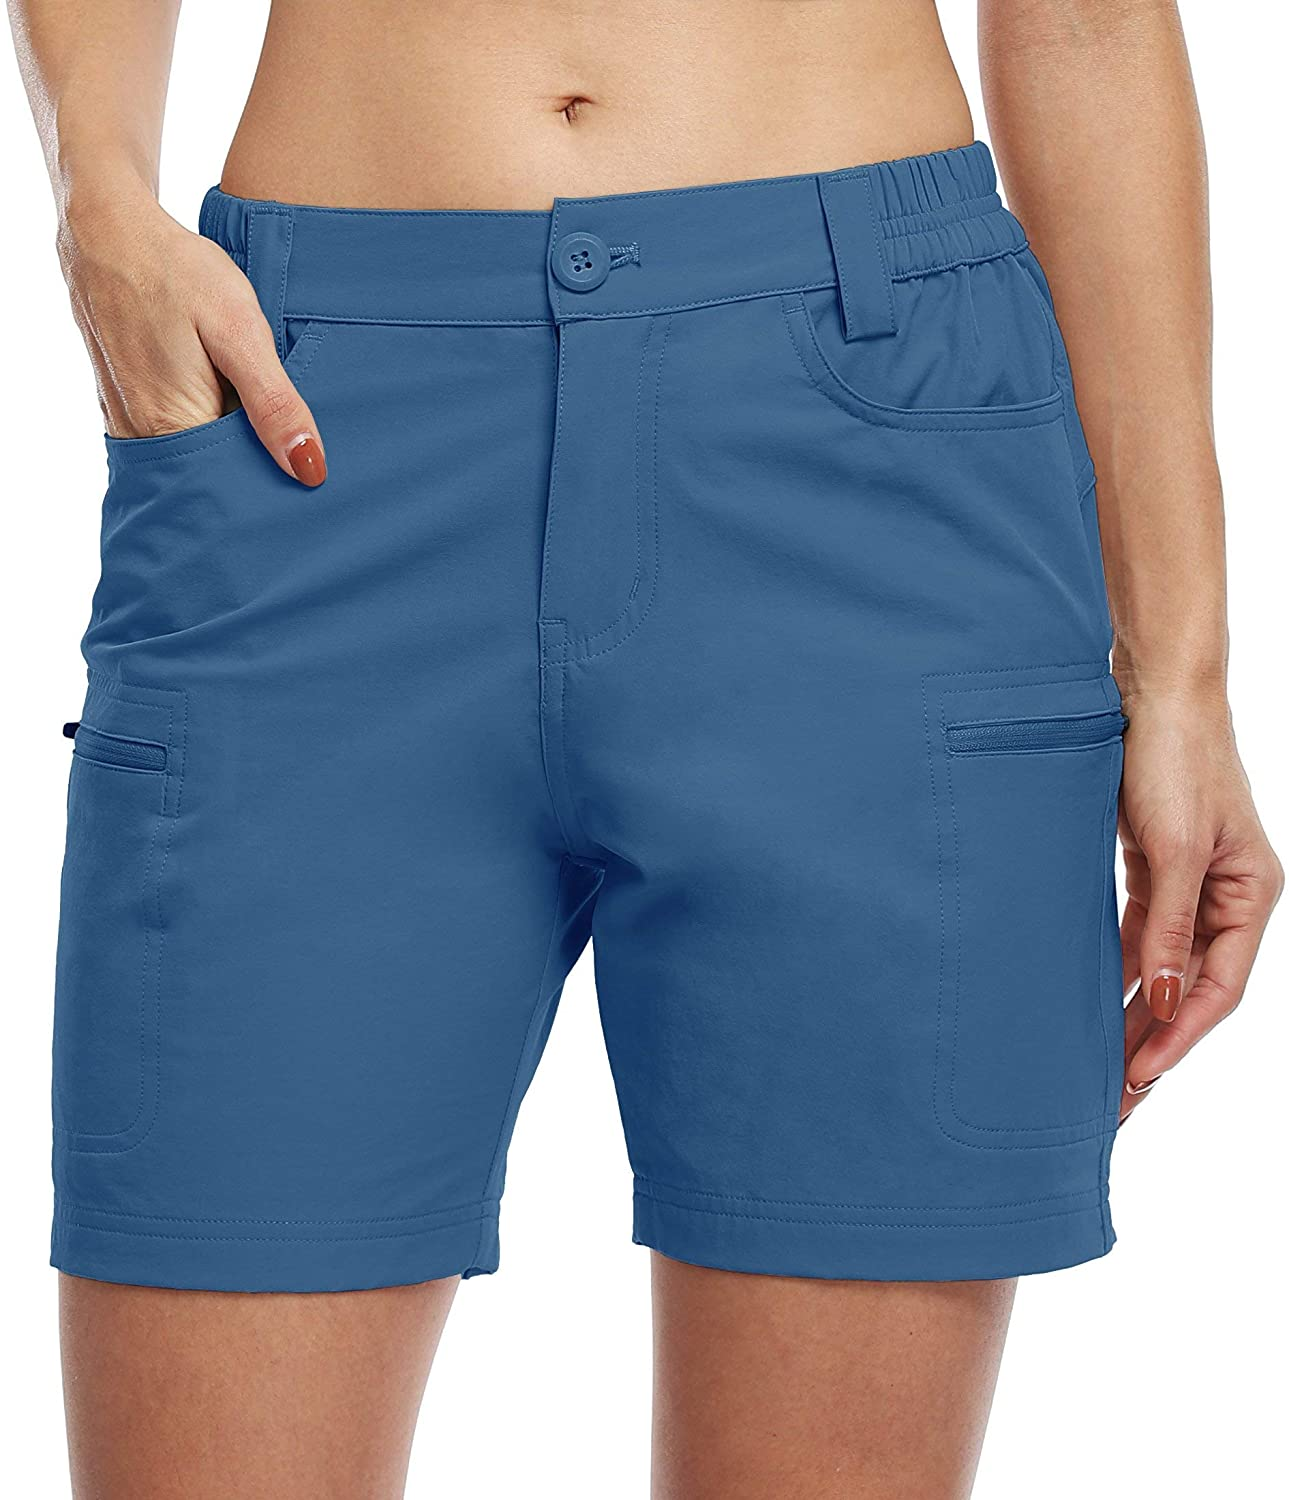 Unisex  Hiking Cargo Shorts Stretch Golf Active Shorts Water Resistant Outdoor Summer Shorts with Pockets 5""